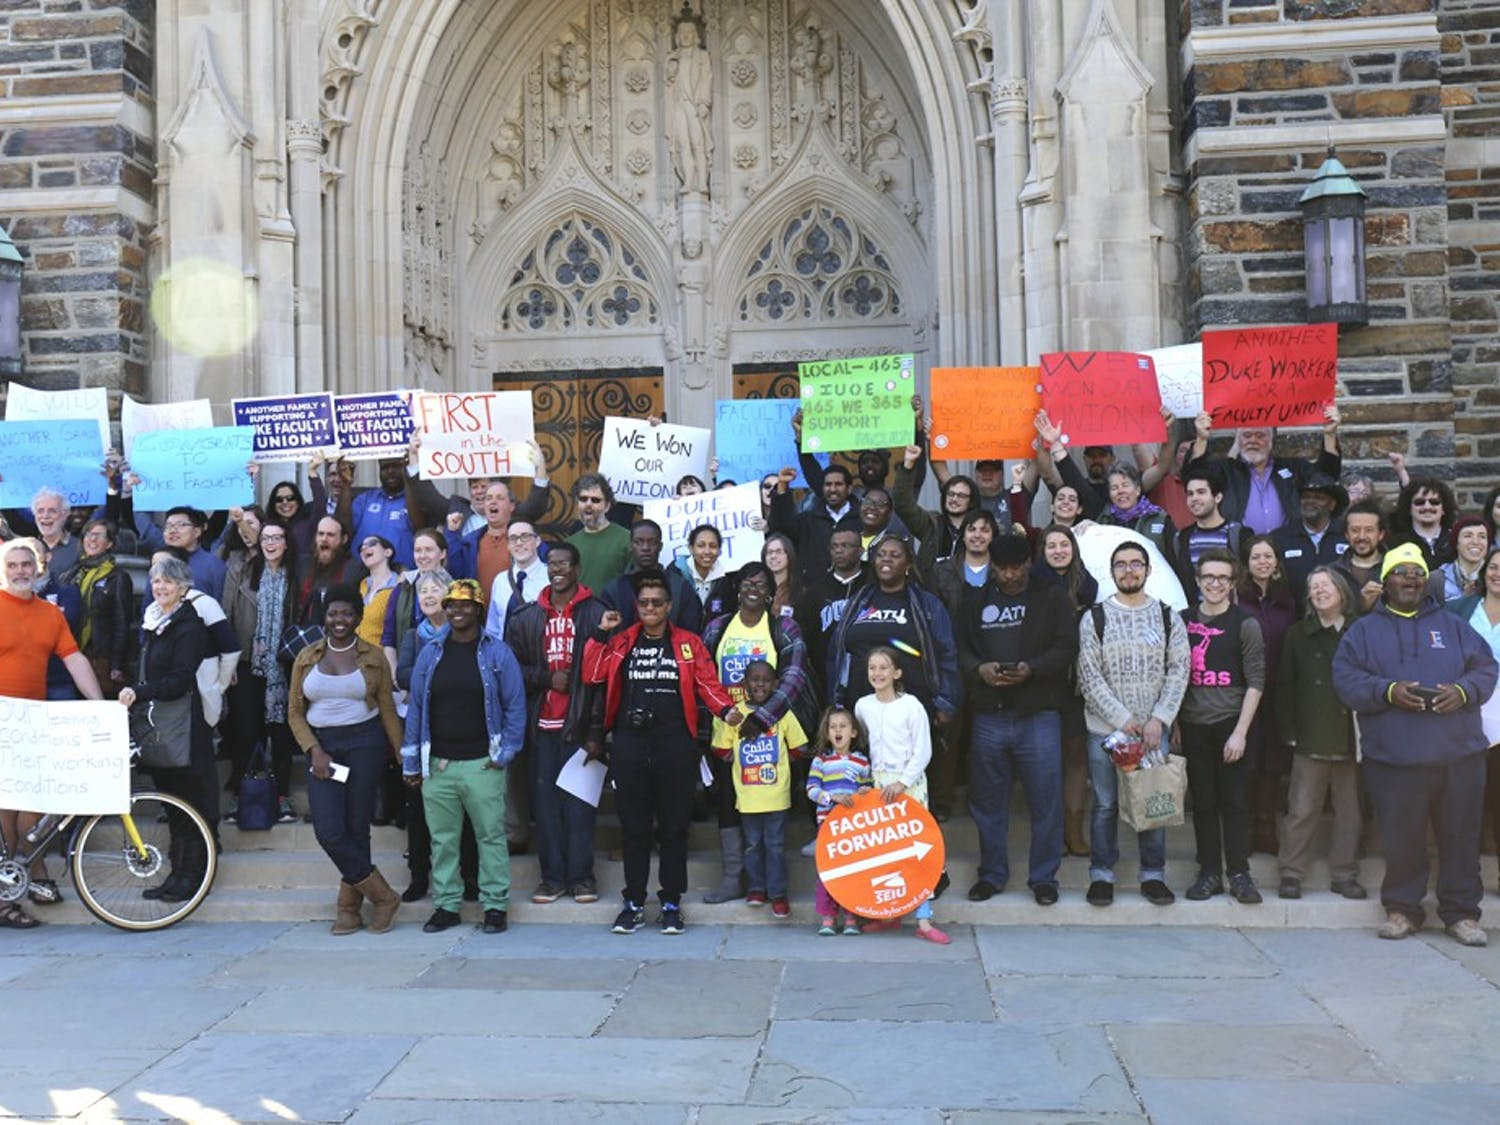 People gather at Duke Chapel to celebrate Duke Teaching First becoming eligible to unionize.